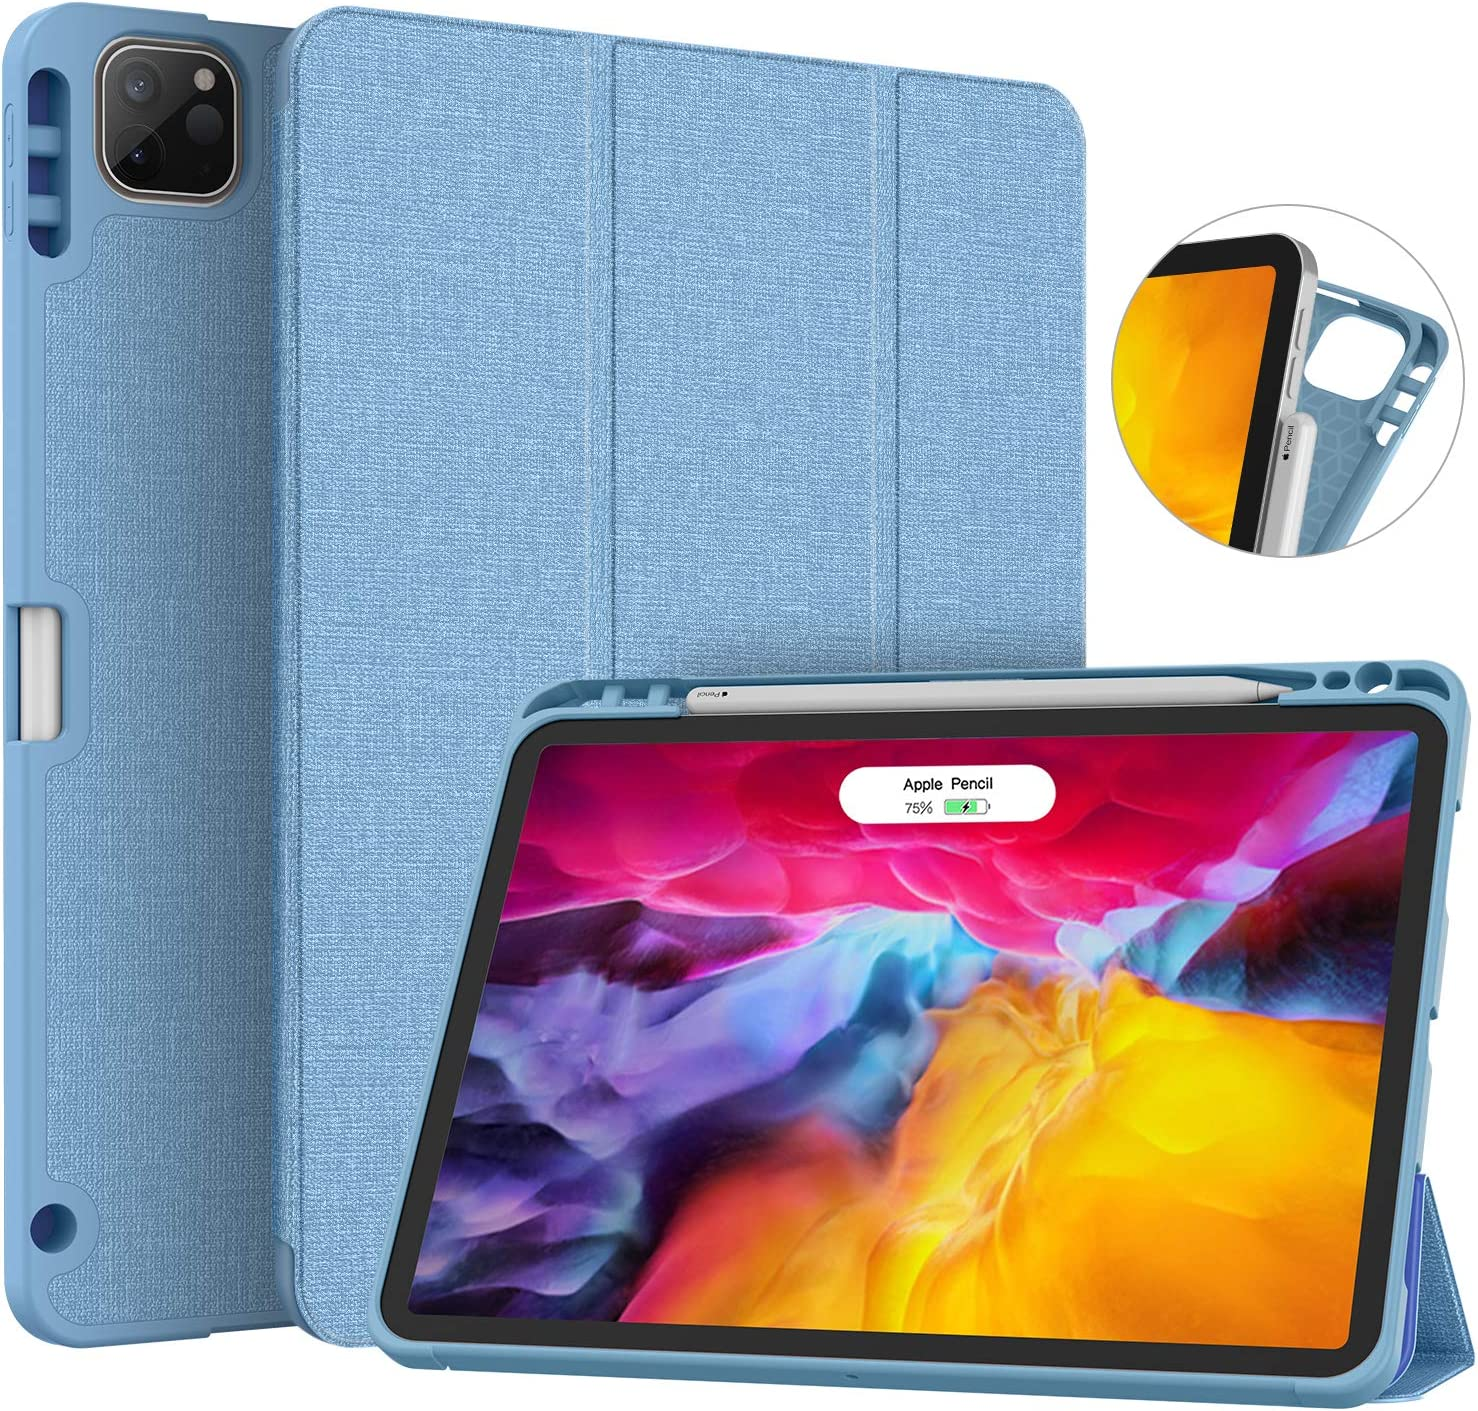 Soke New iPad Pro 11 Case 2020 & 2018 with Pencil Holder - [Full Body Protection + Apple Pencil Charging + Auto Wake/Sleep], Soft TPU Back Cover for 2020 iPad Pro 11 inch(LightBlue)